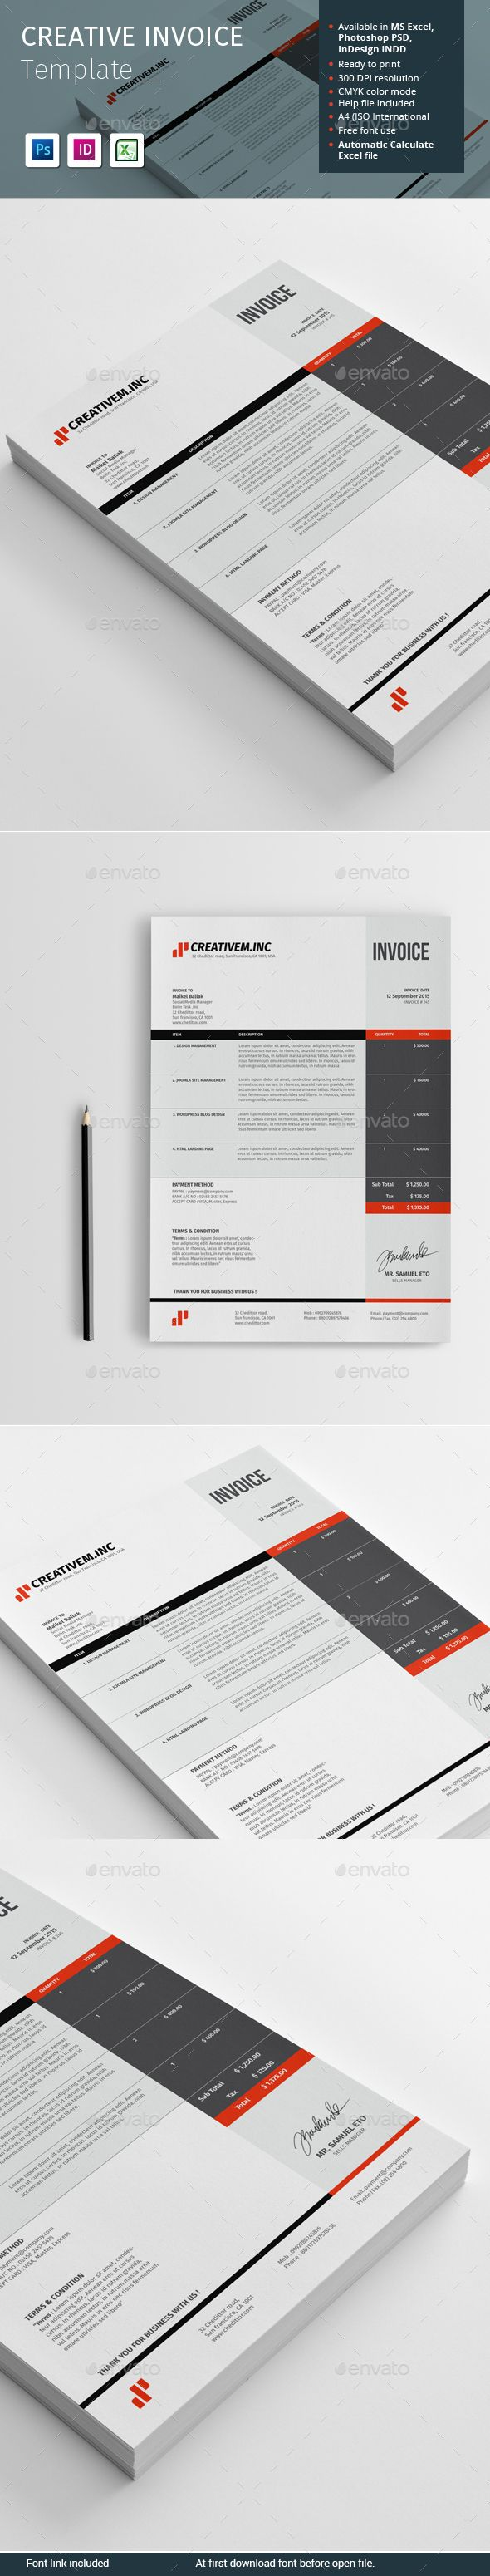 Best Invoice Images On   Invoice Design Stationery